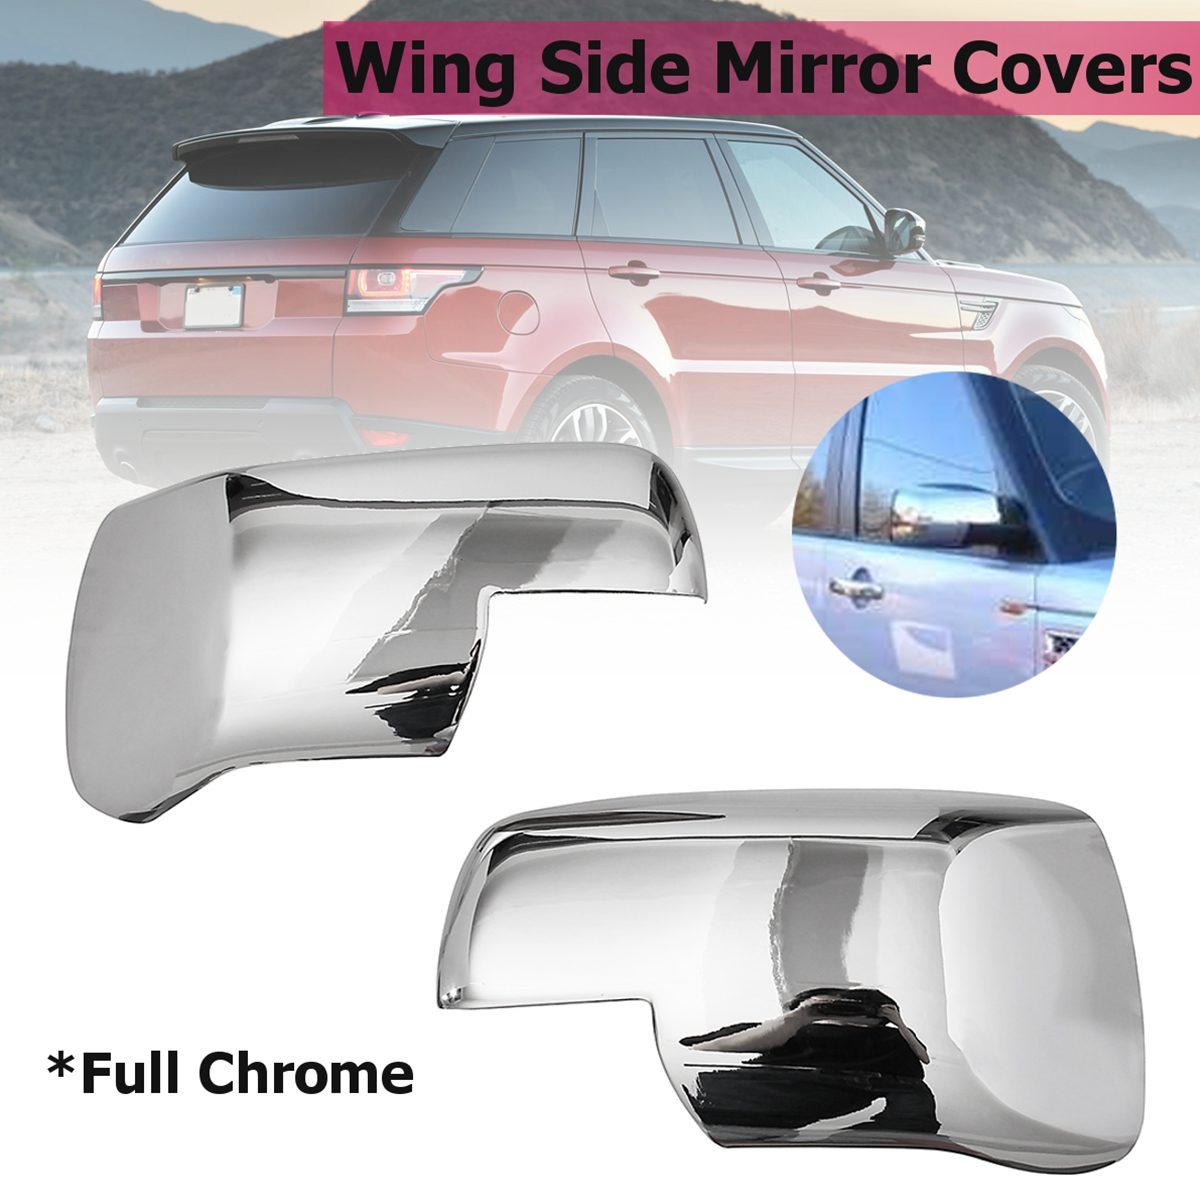 Pair Full Chrome Wing Side Mirror Covers Caps For Land Rover Discovery 3 Range Sport Freelander 2 2004 2005 2006 2007 2008 2009